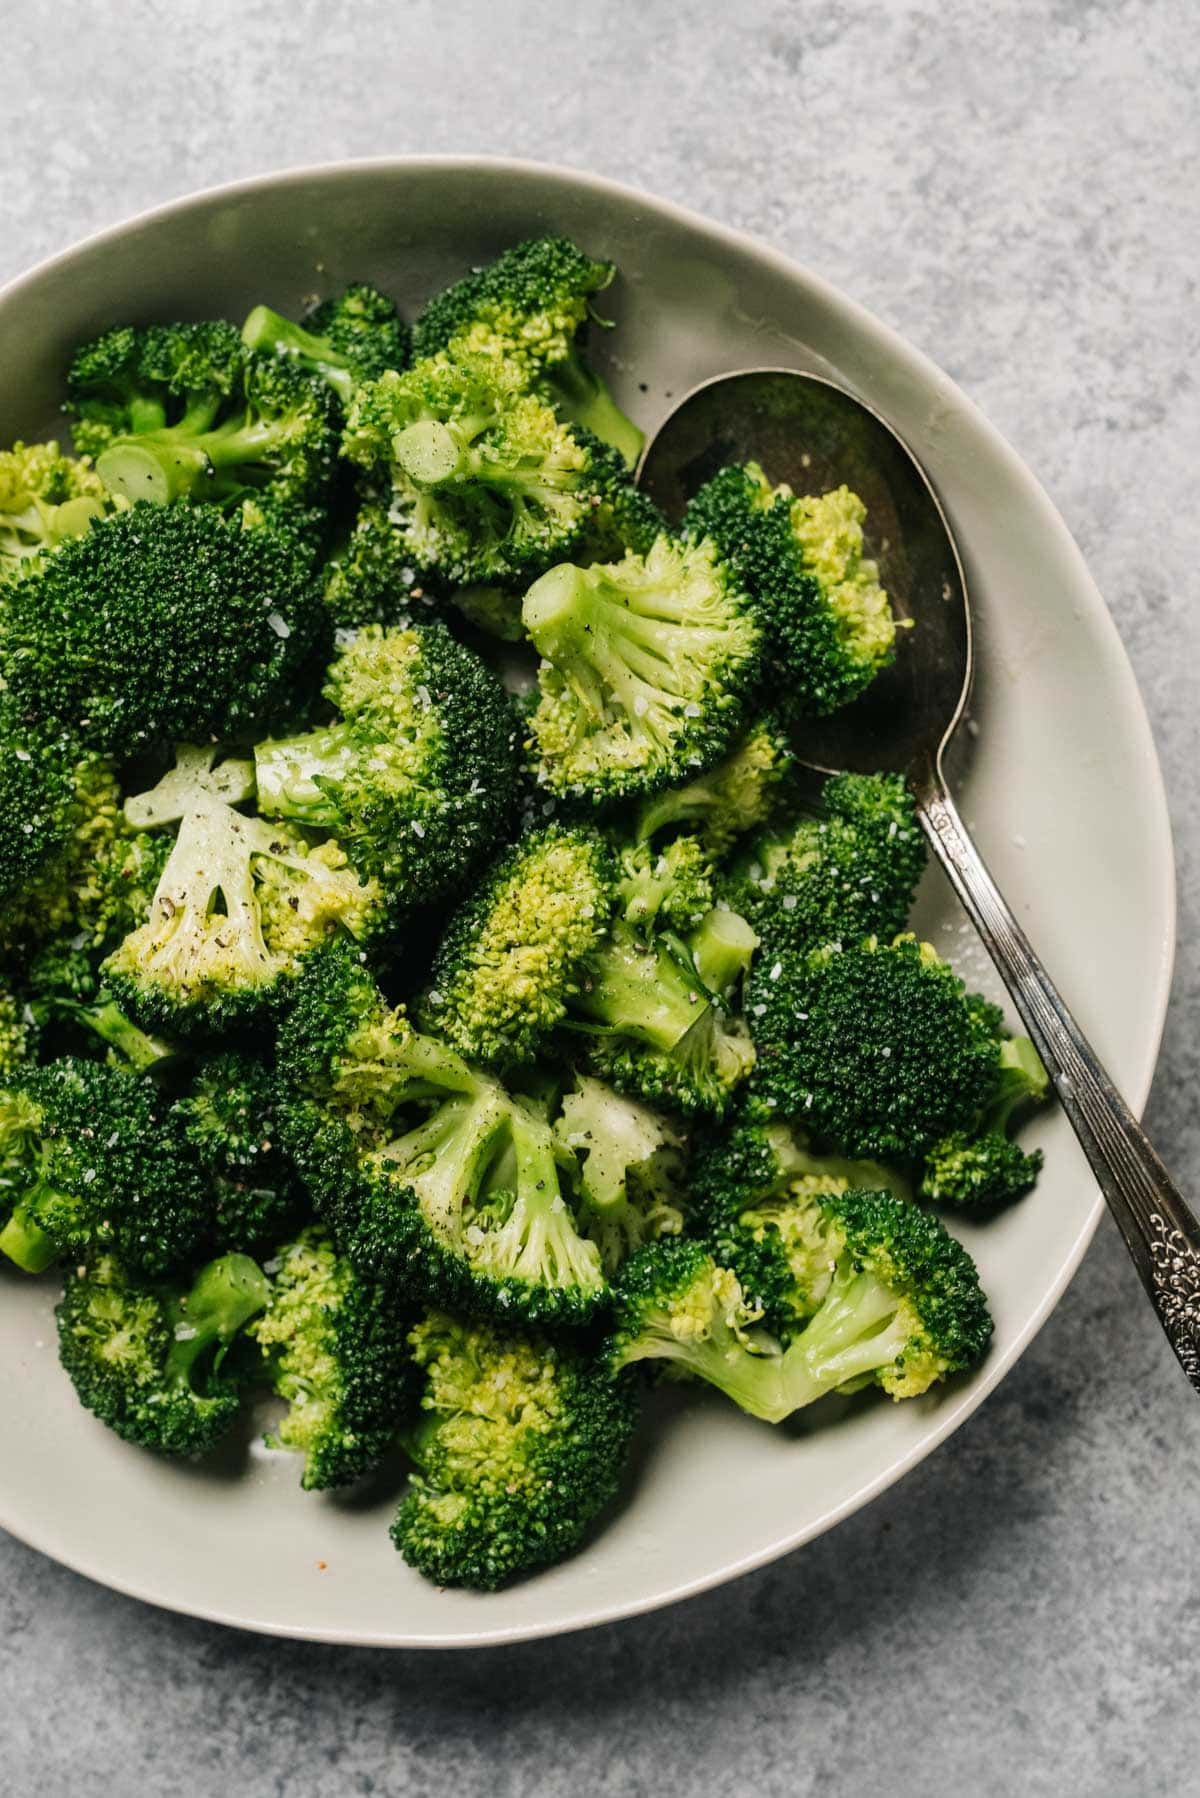 Steamed broccoli in a tan serving bowl with a silver serving spoon on a concrete background.